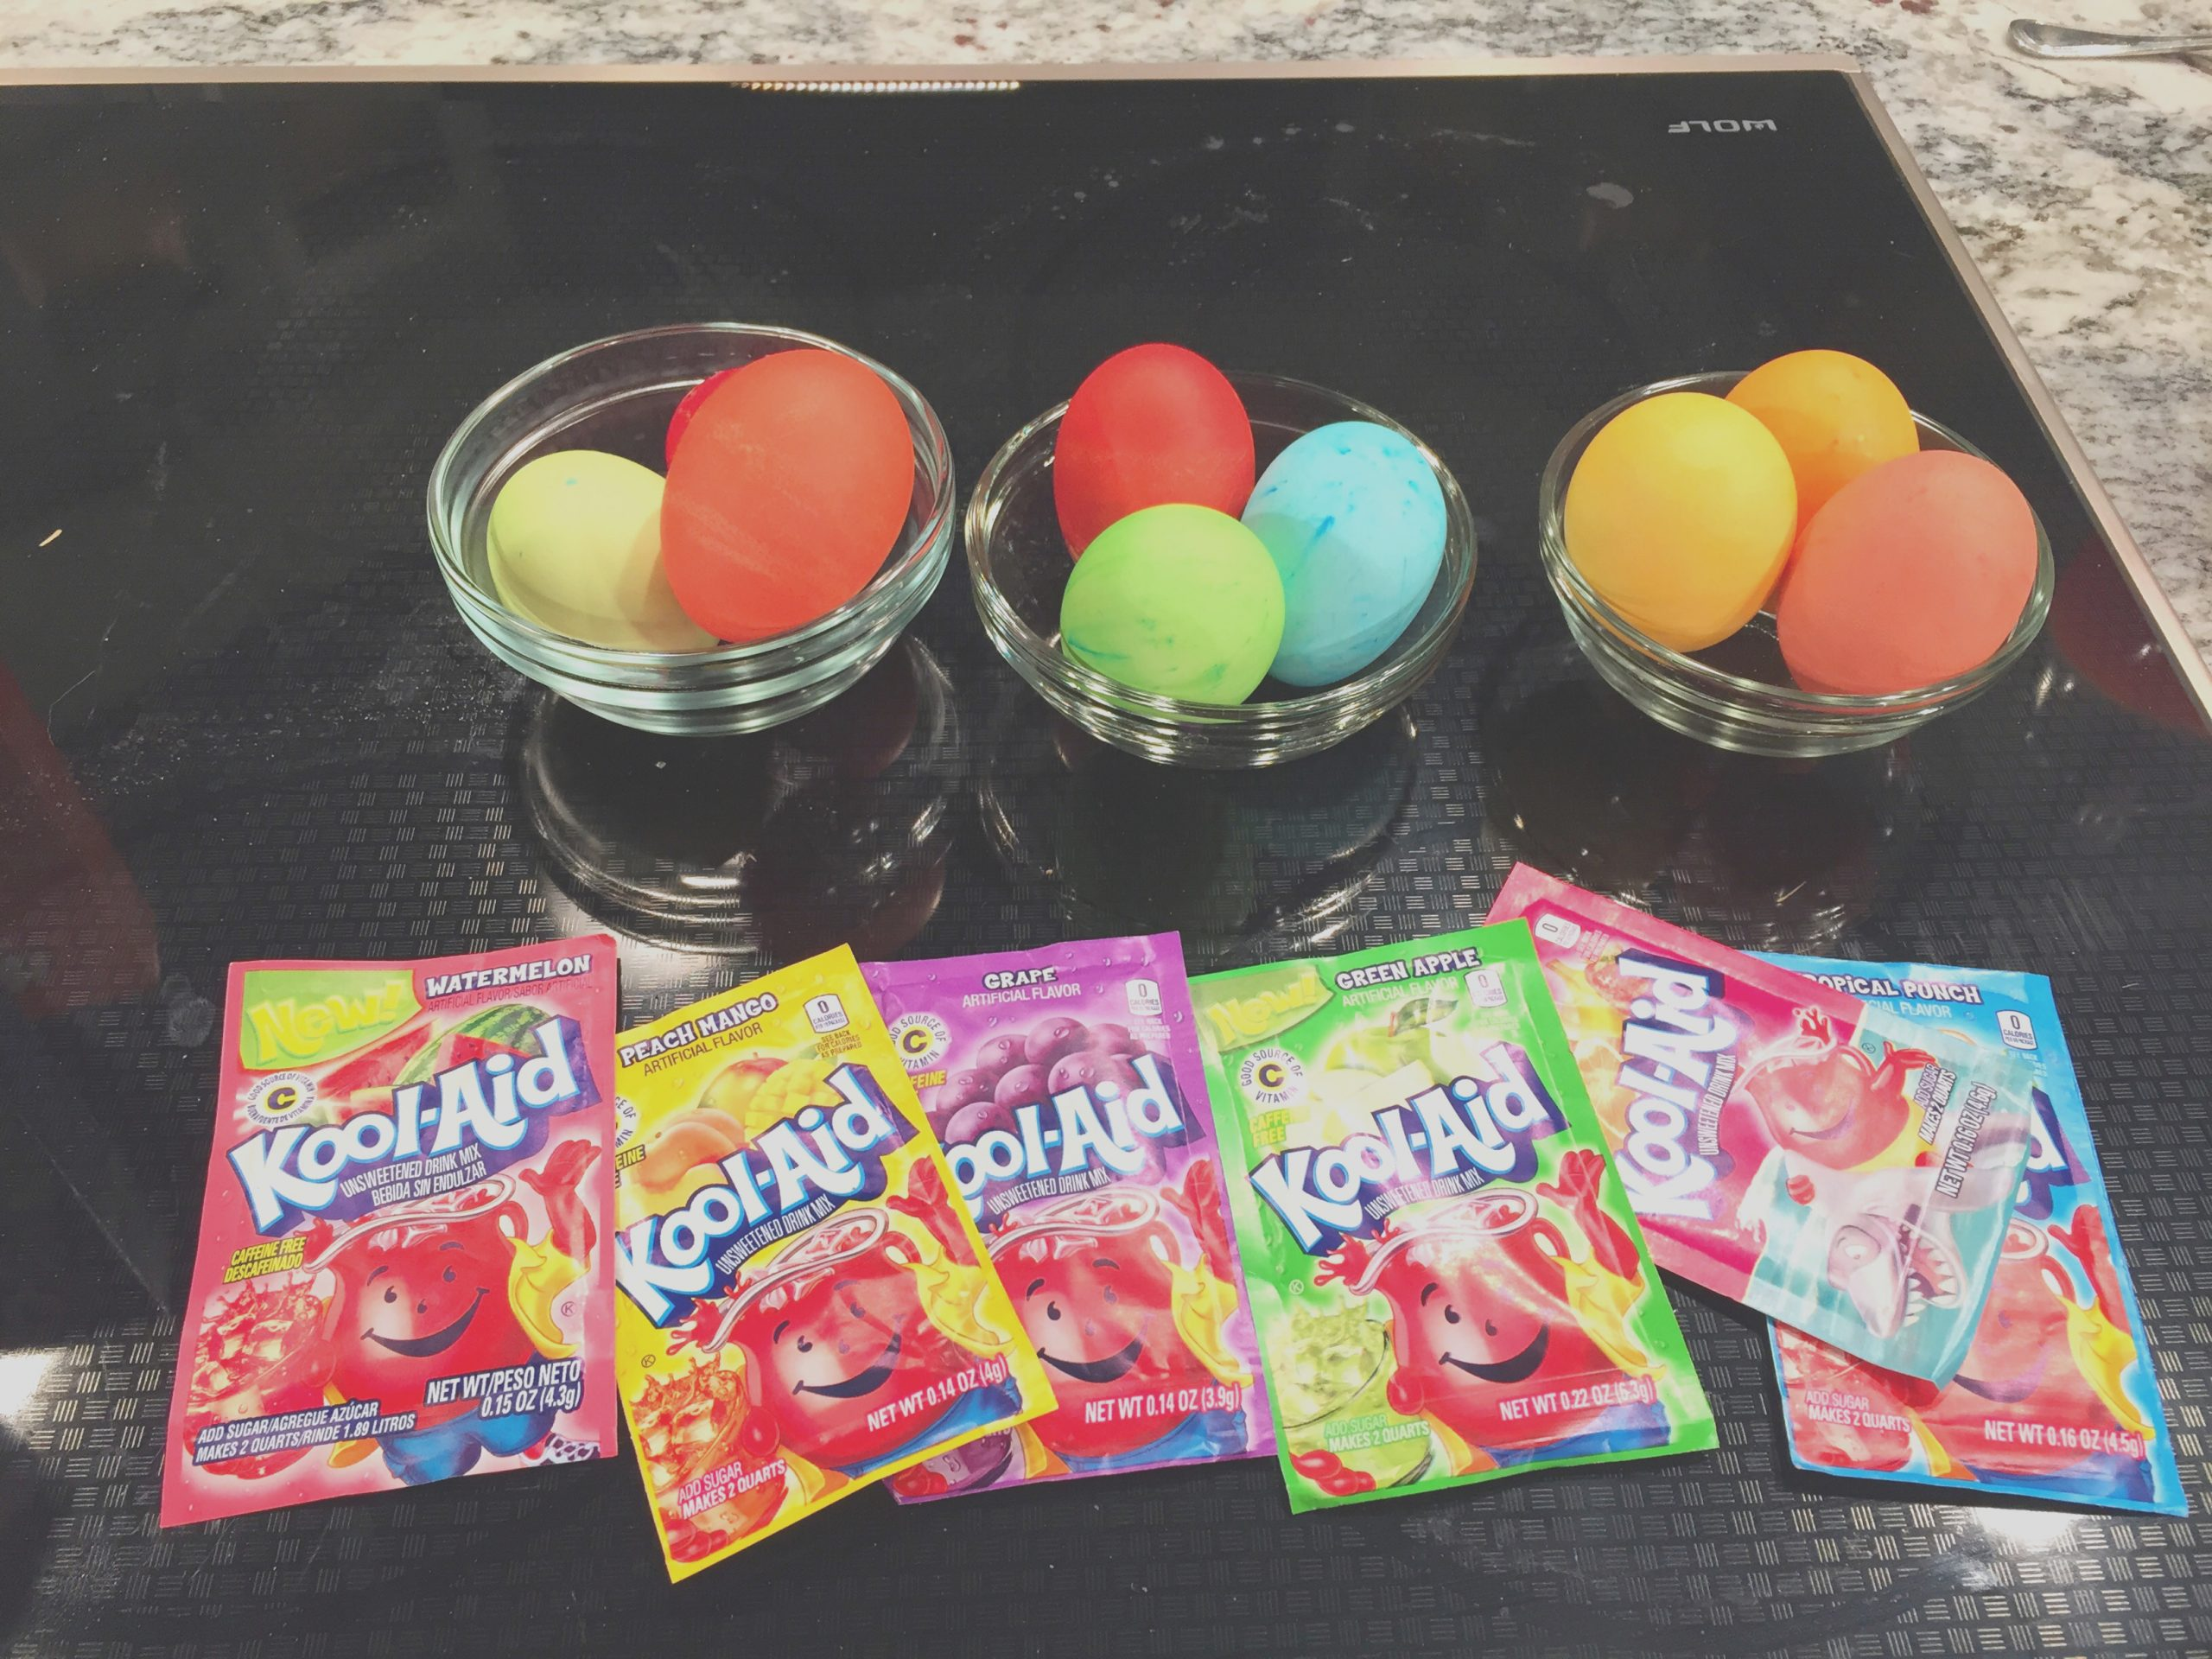 how to color easter eggs save money with kool aid plus easy instructions for the perfect hard boiled egg